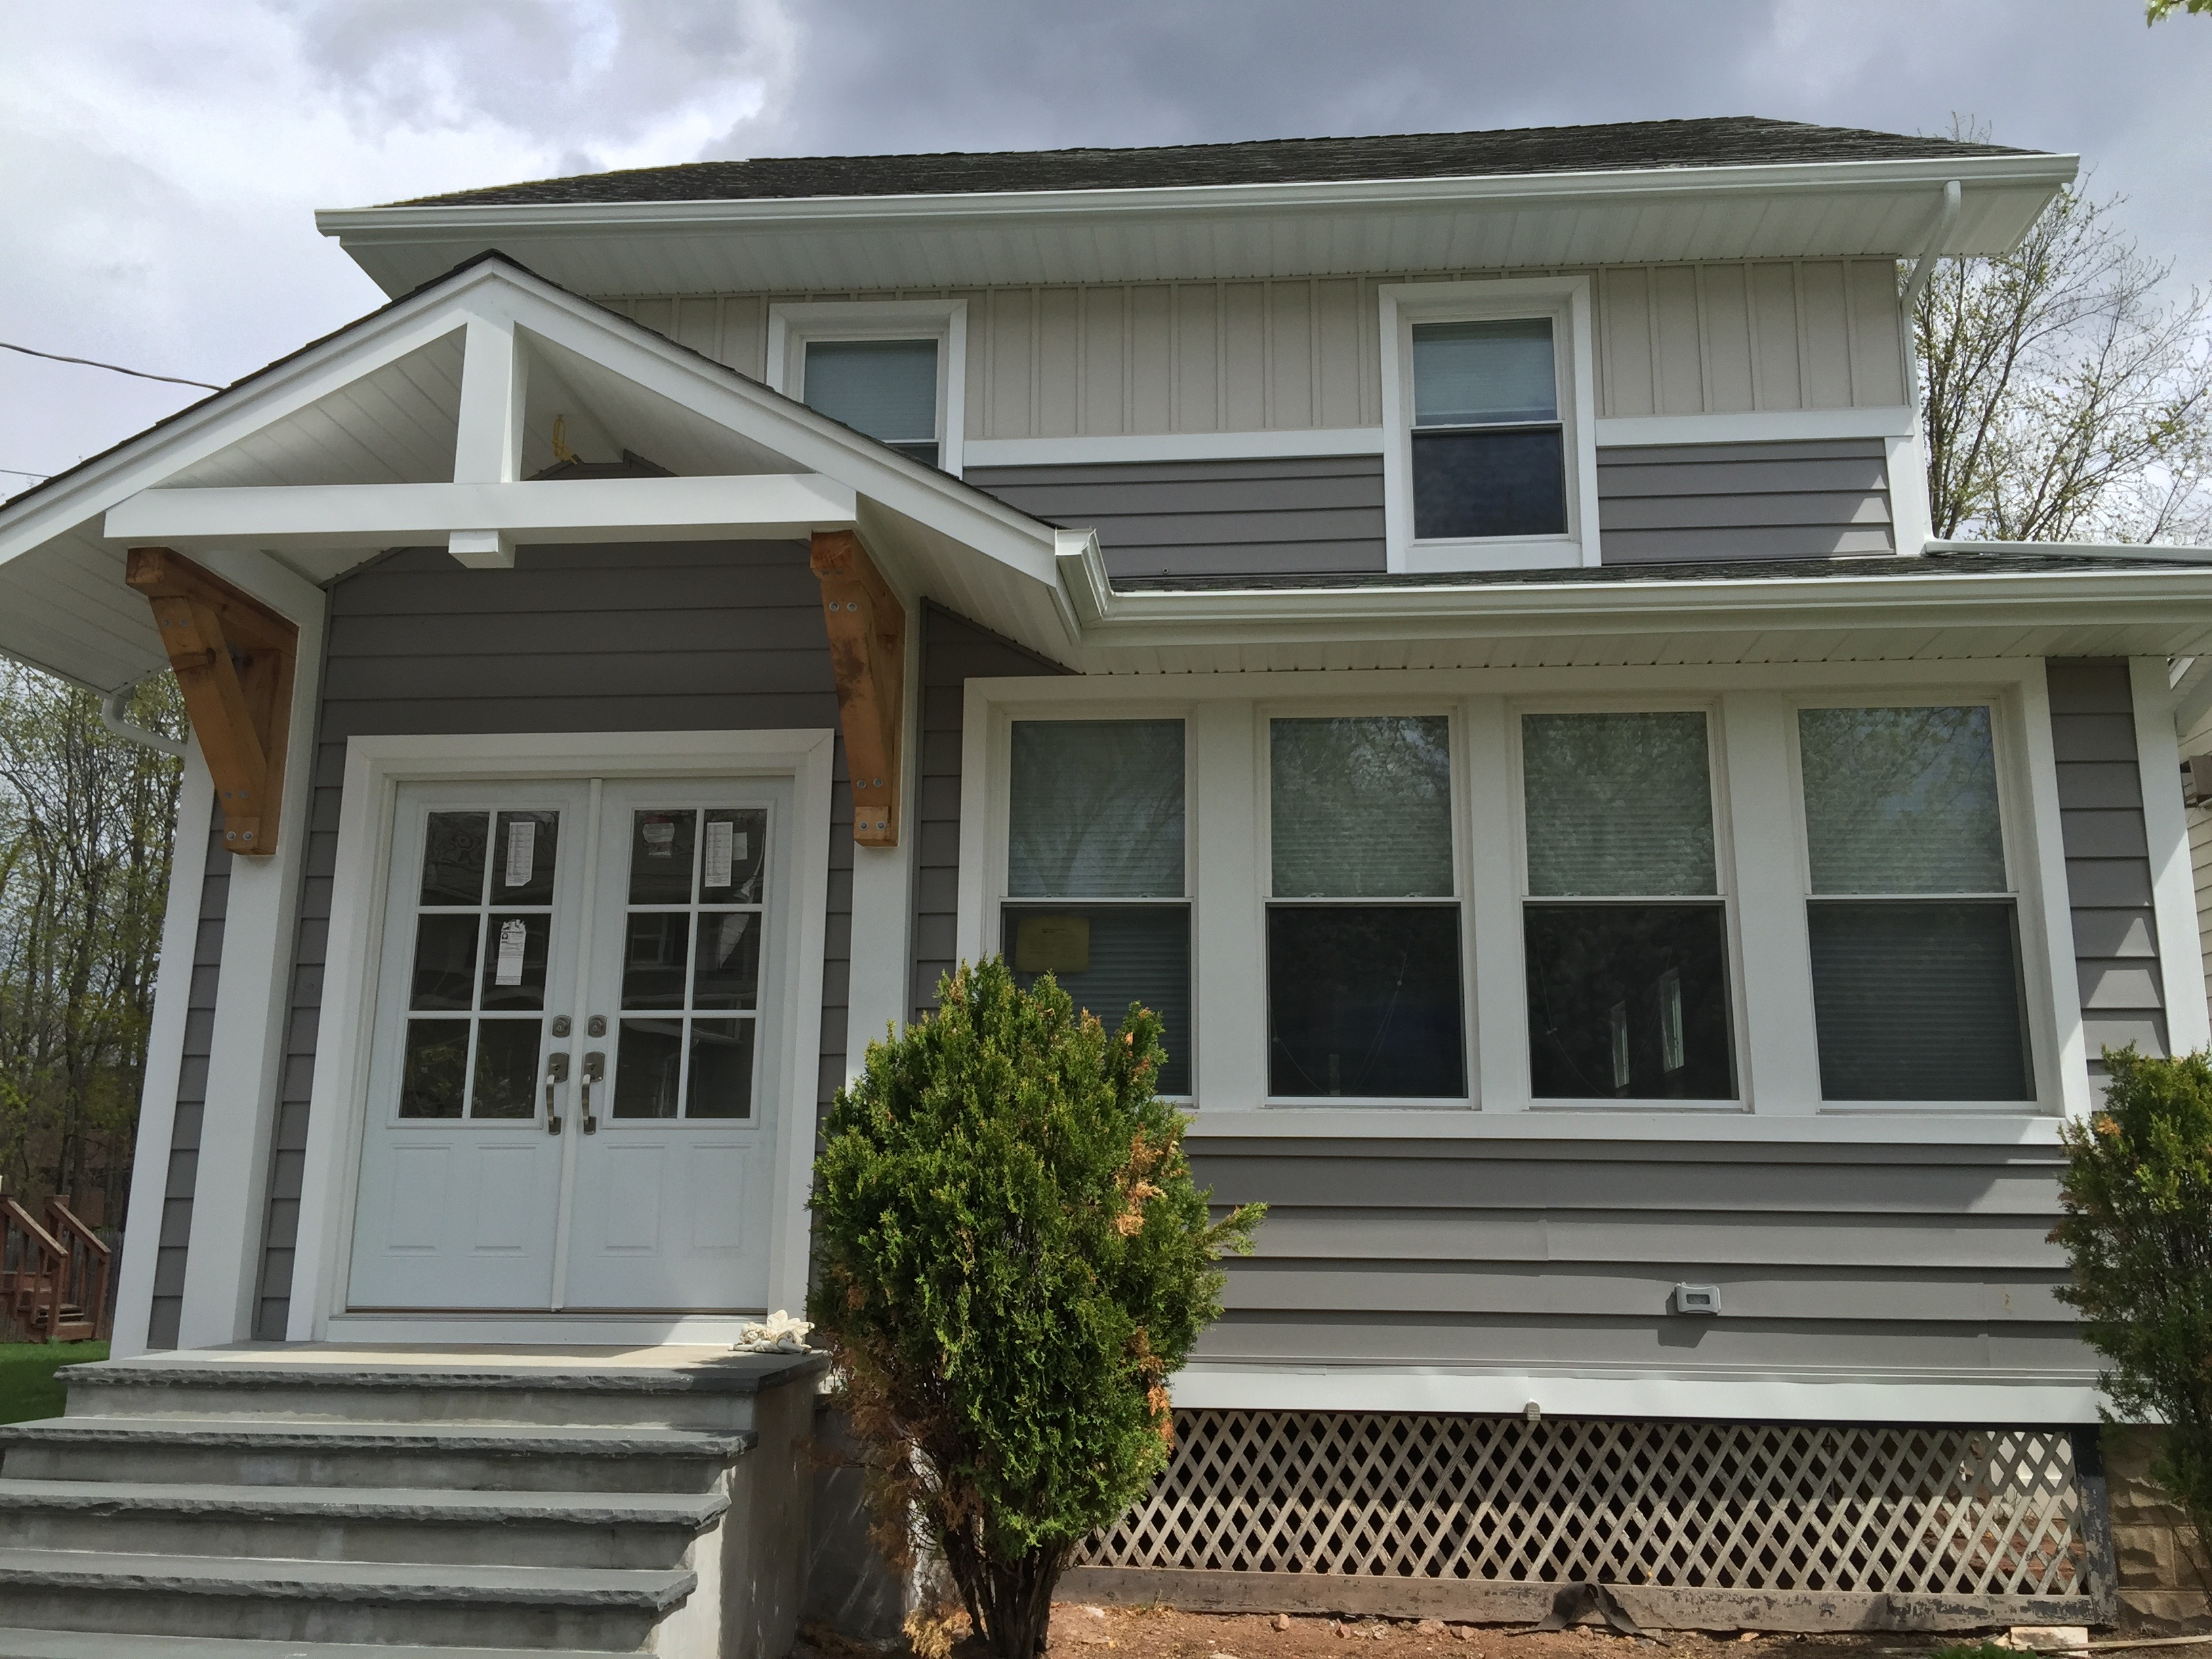 Westville nj discount vinyl siding installation 973 487 - Exterior house insulation under siding ...